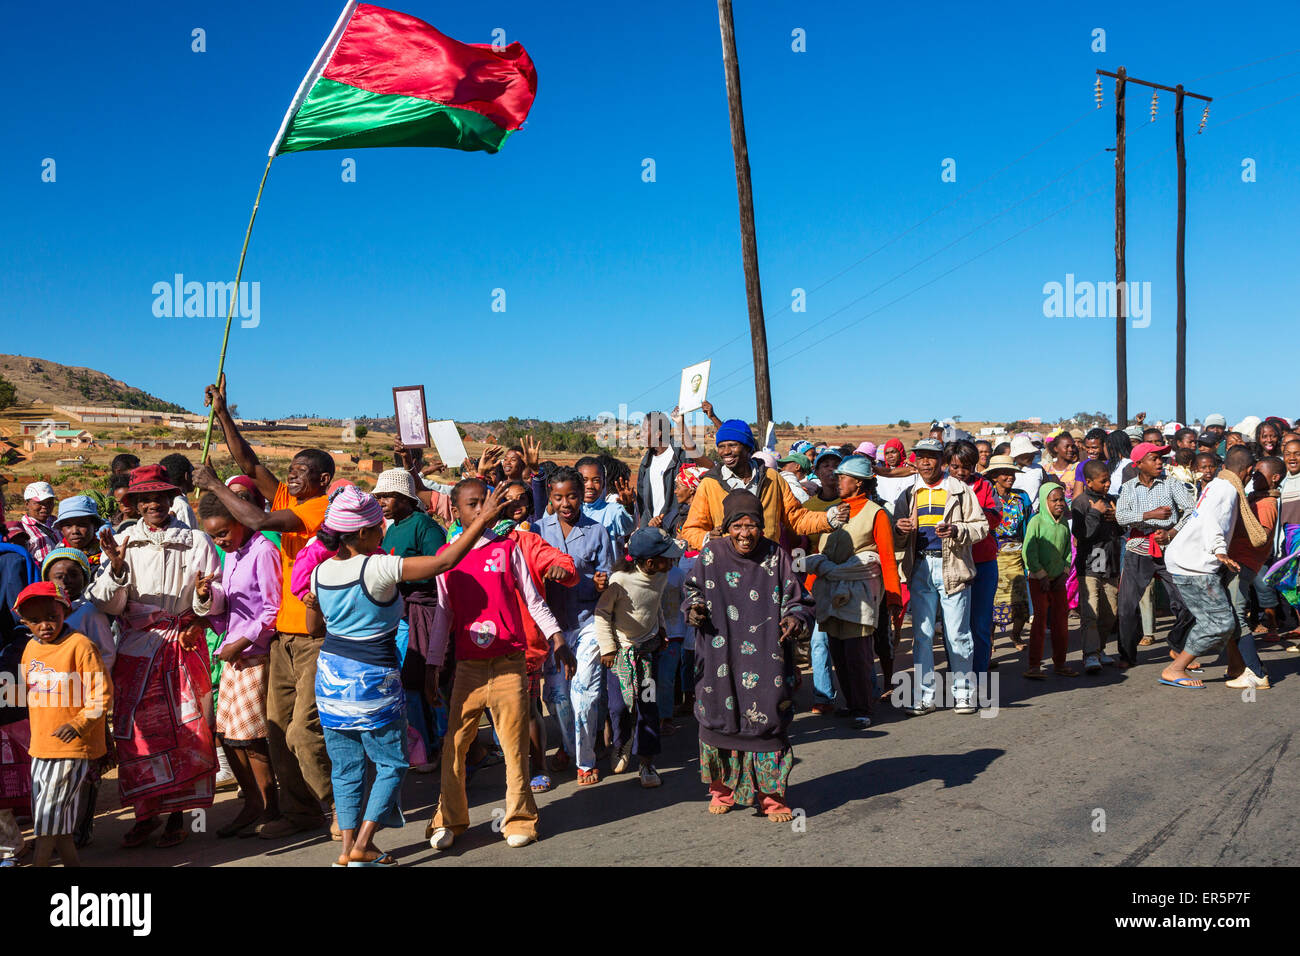 Traditional Procession for deceased relatives near Antananarivo, Merina people, capital of Madagascar, Africa - Stock Image